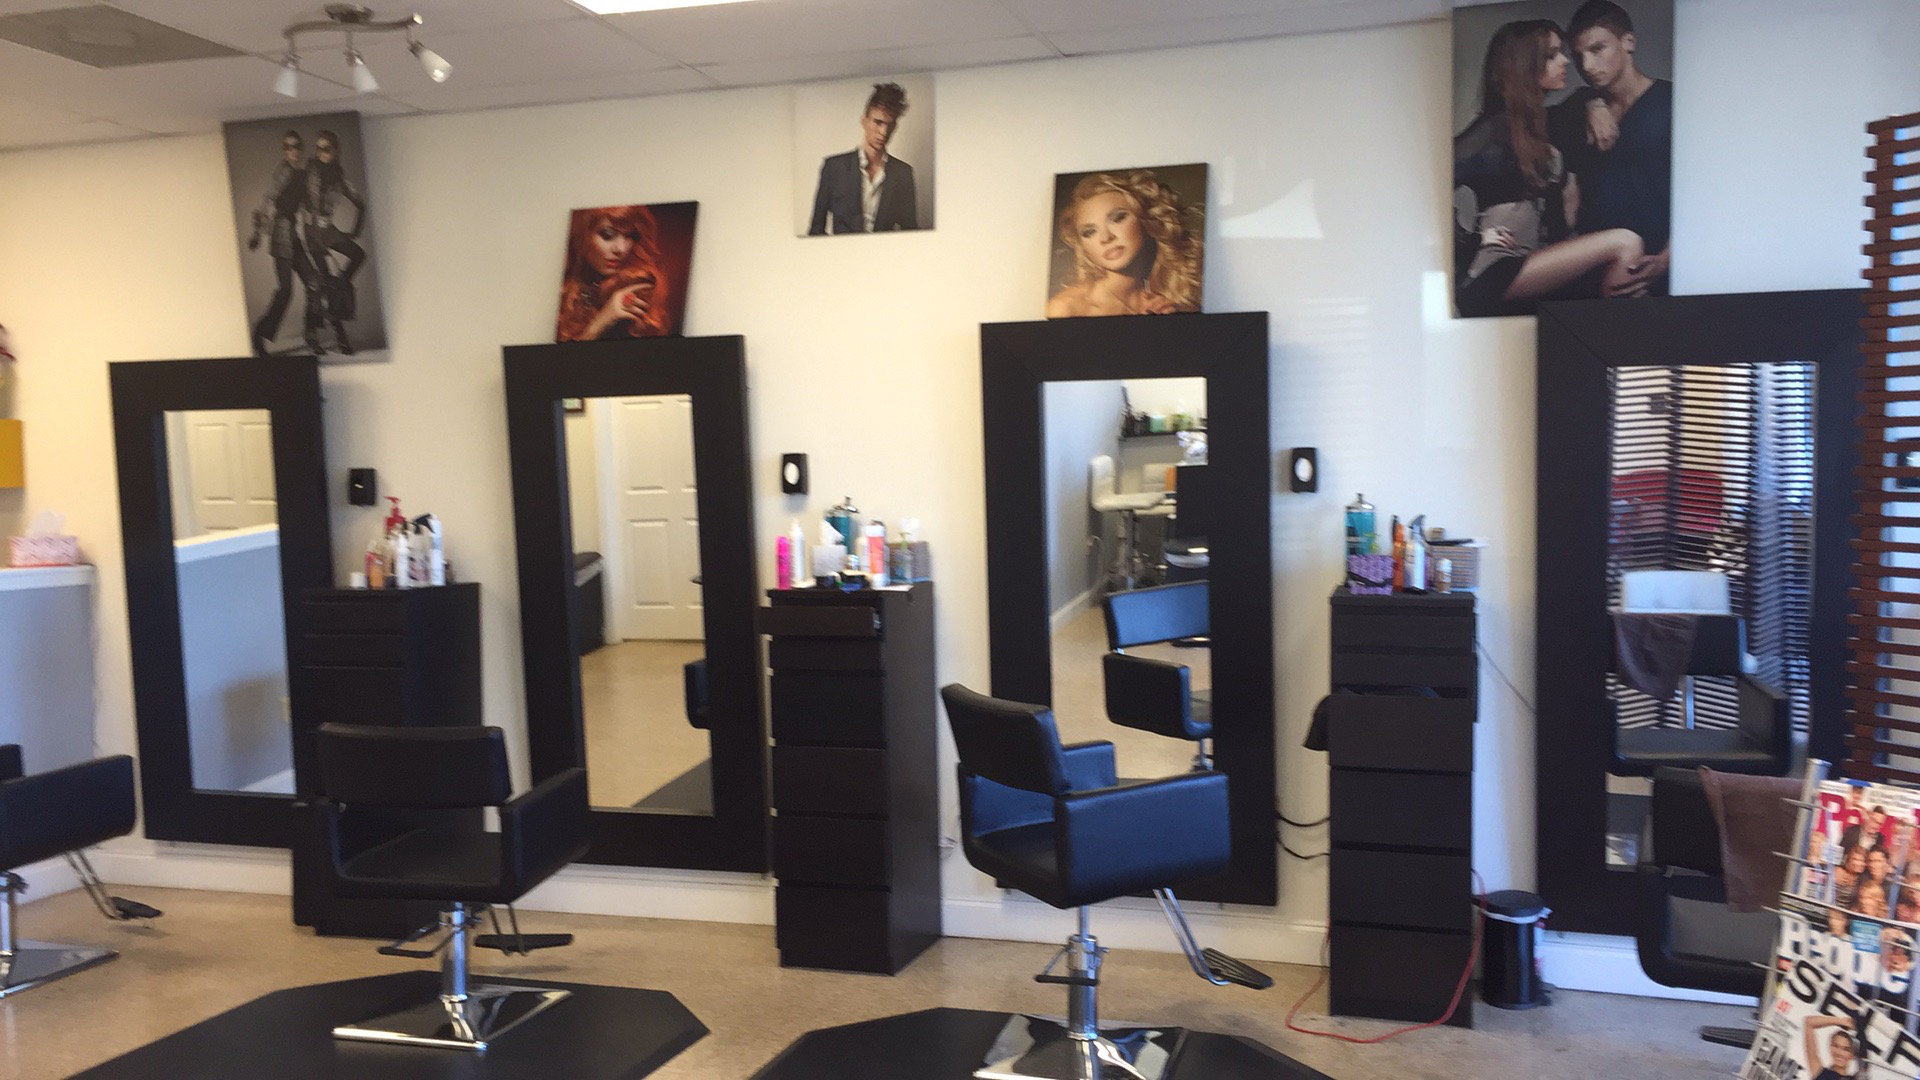 Vida salon charlotte north carolina nc for 8 the salon charlotte nc